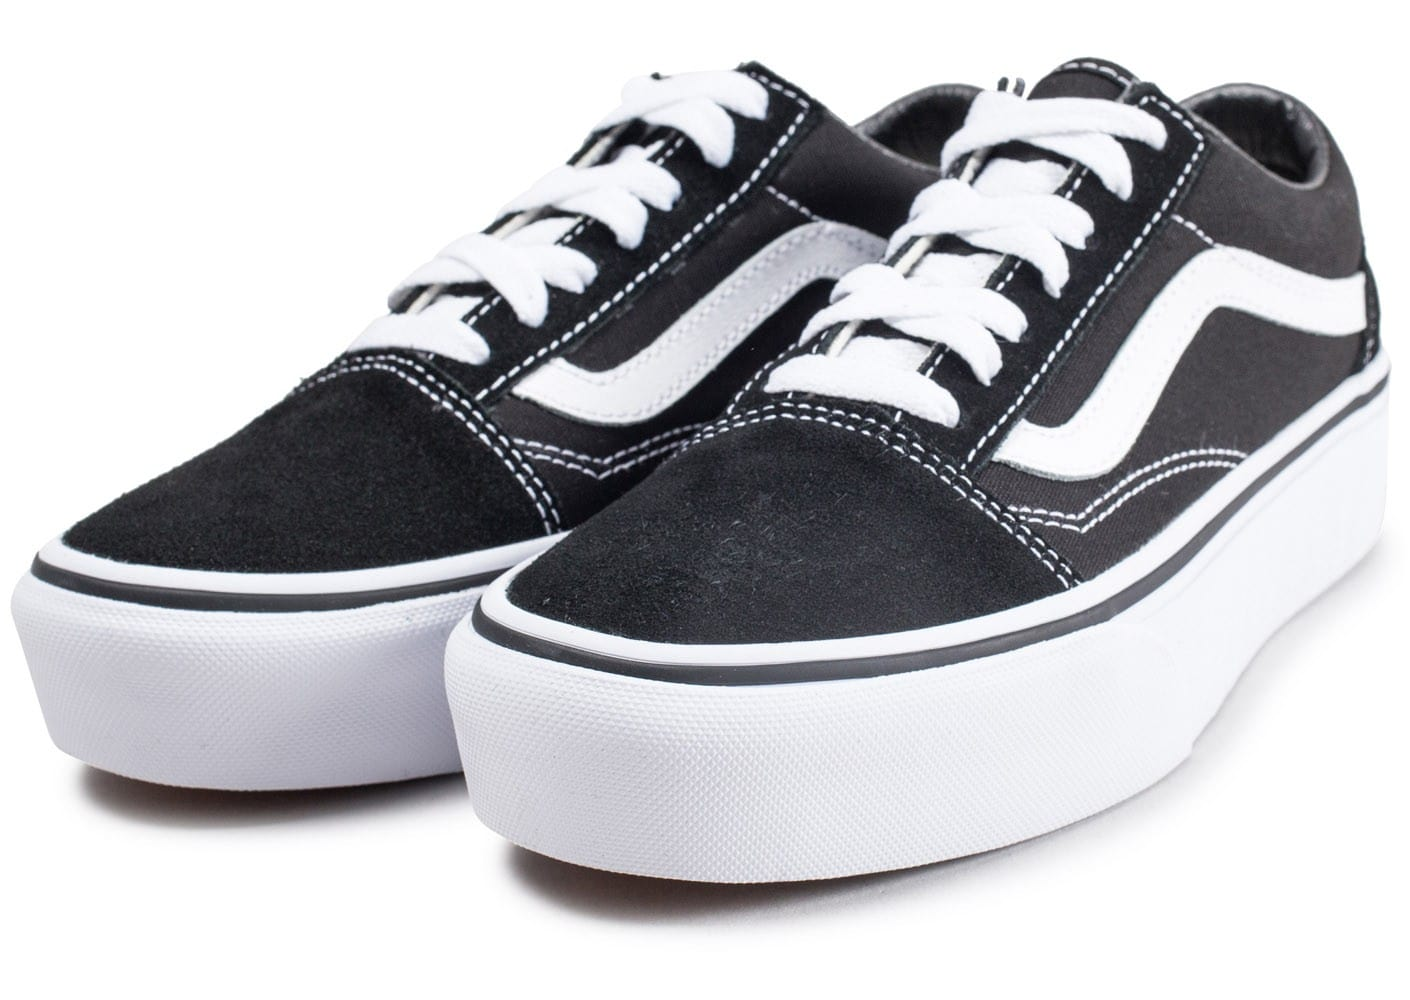 vans old skool platform noire et blanche chaussures femme chausport. Black Bedroom Furniture Sets. Home Design Ideas